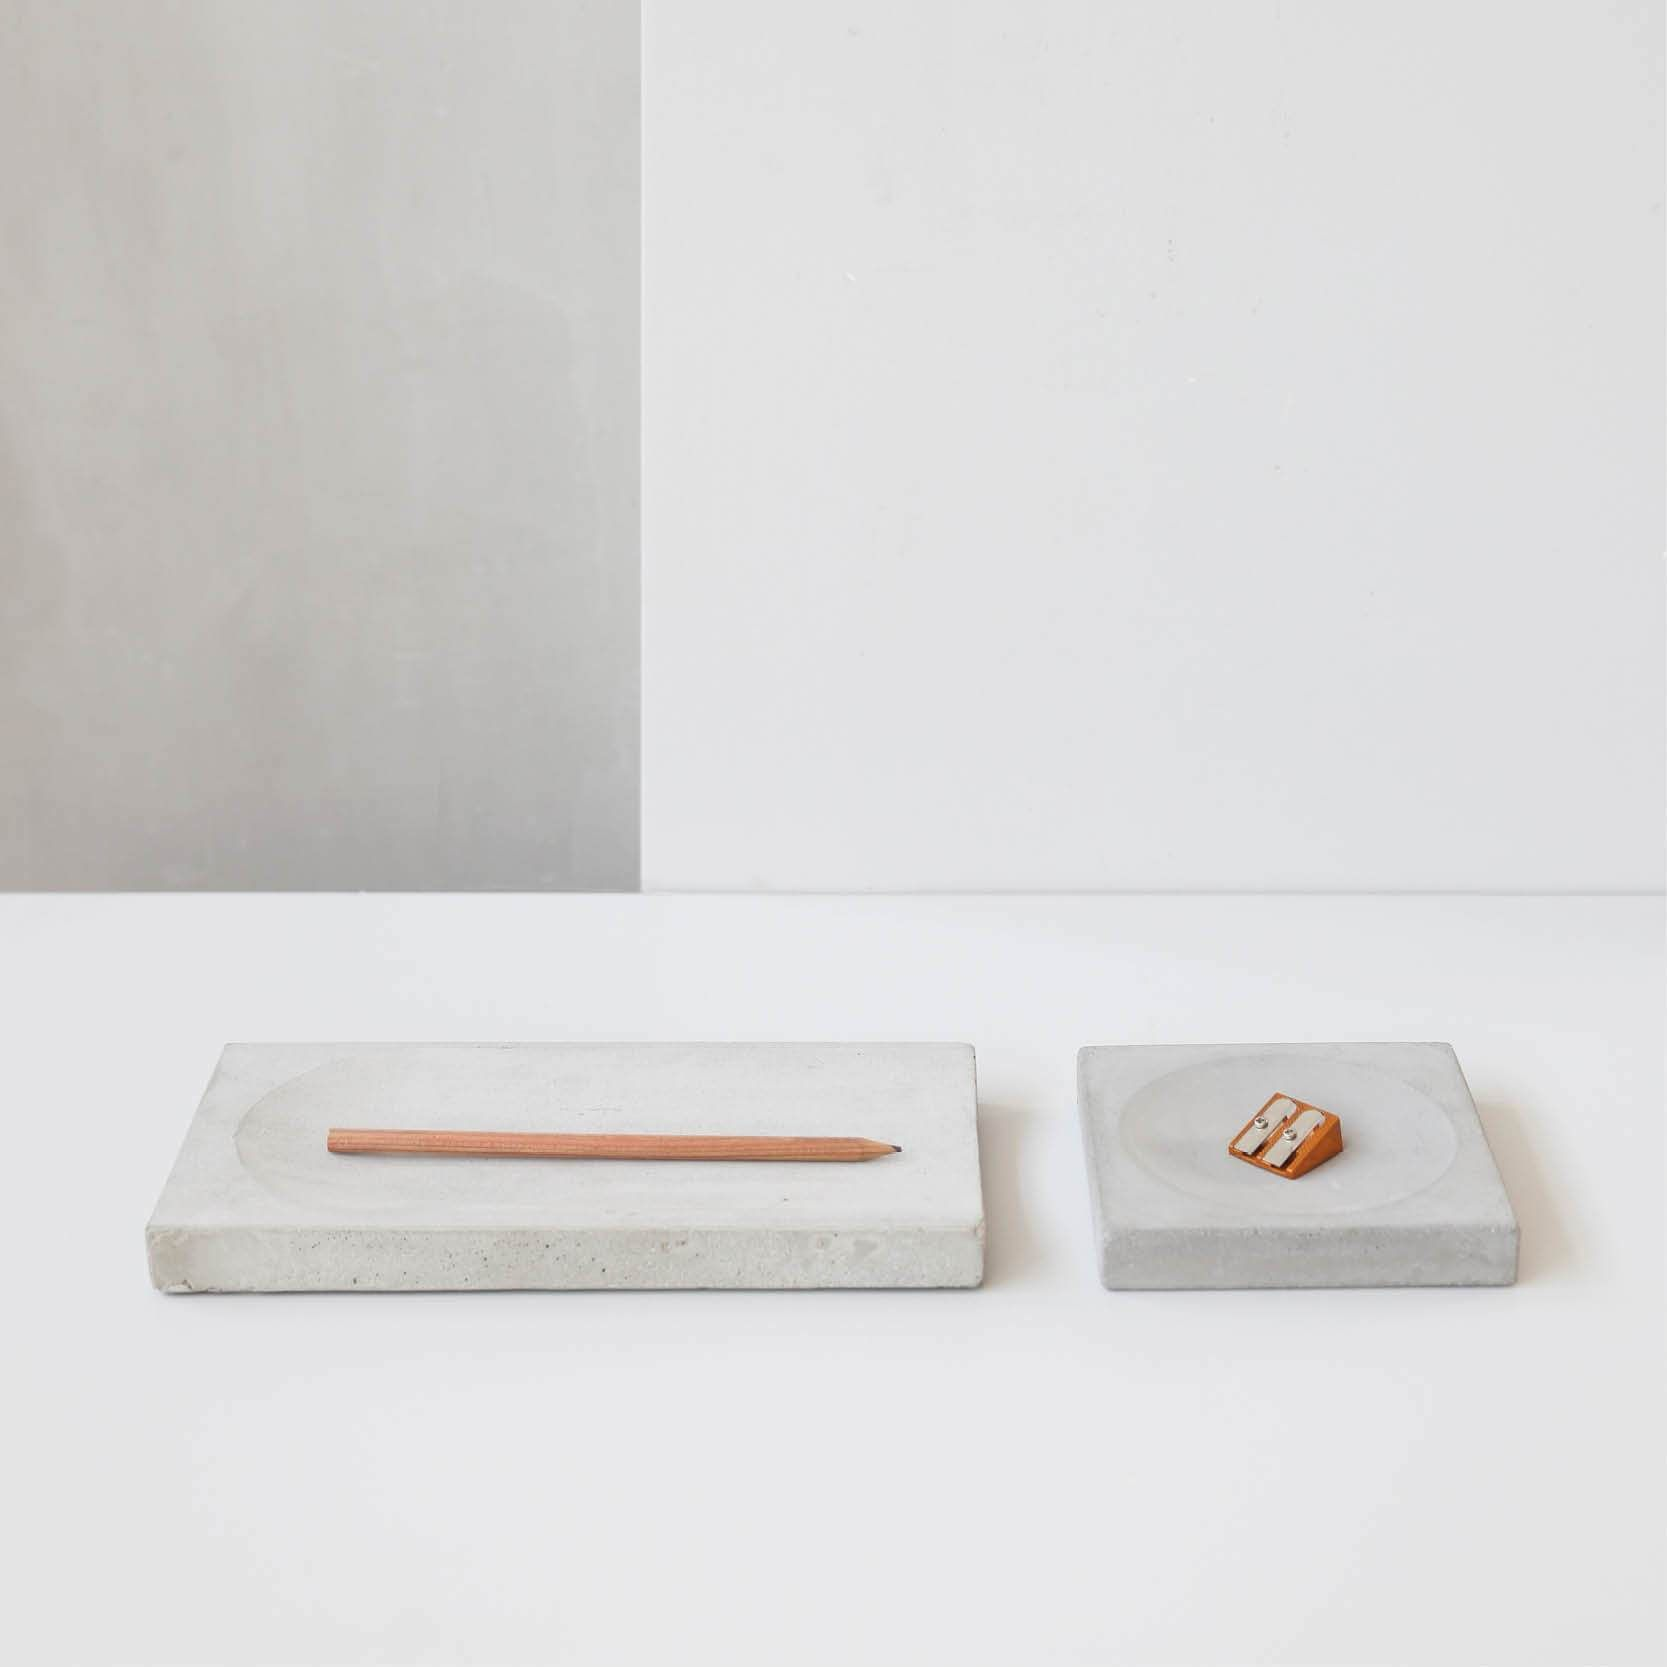 Concrete Tray Is A Set Of Two Geometric Trays Perfect To Display Your Jewellery Or Fruit With Grace The Trays Has That Urban Feel To Them Being Nice But No